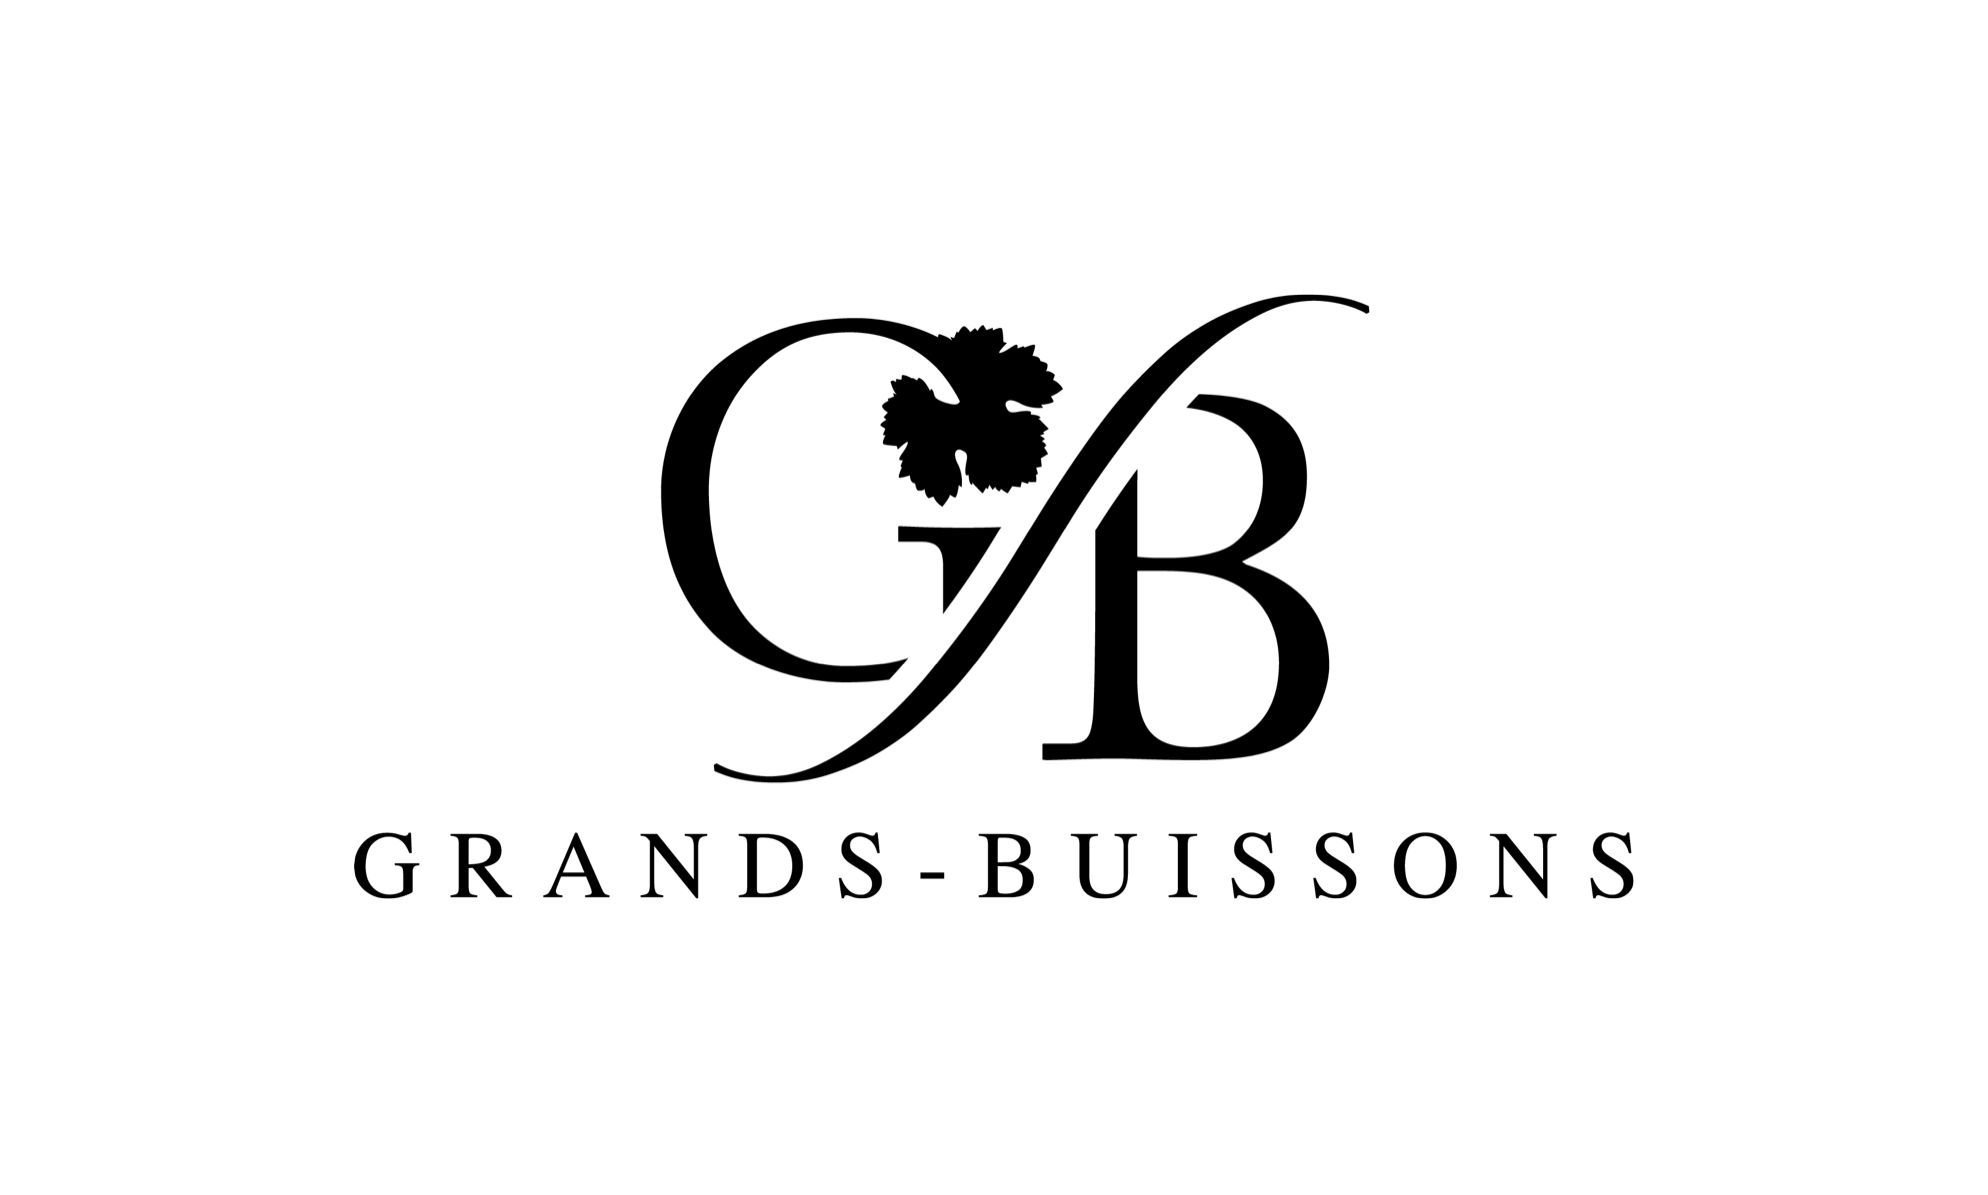 Grand Buissons